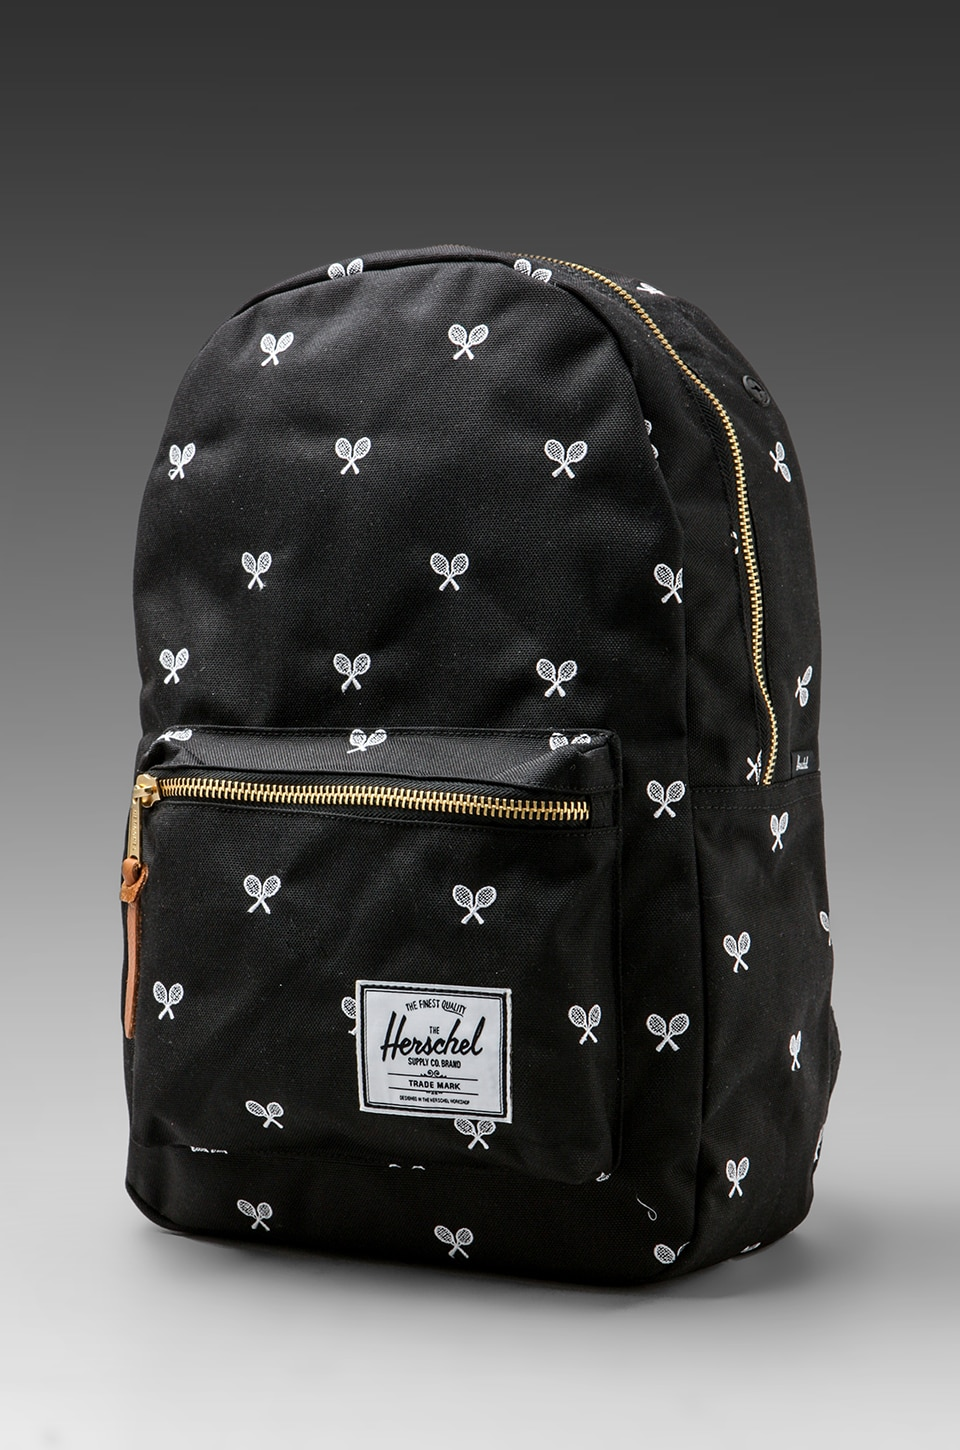 Herschel Supply Co. Invitational Collection Settlement Plus Cordura Backpack in Black/White Embroidery